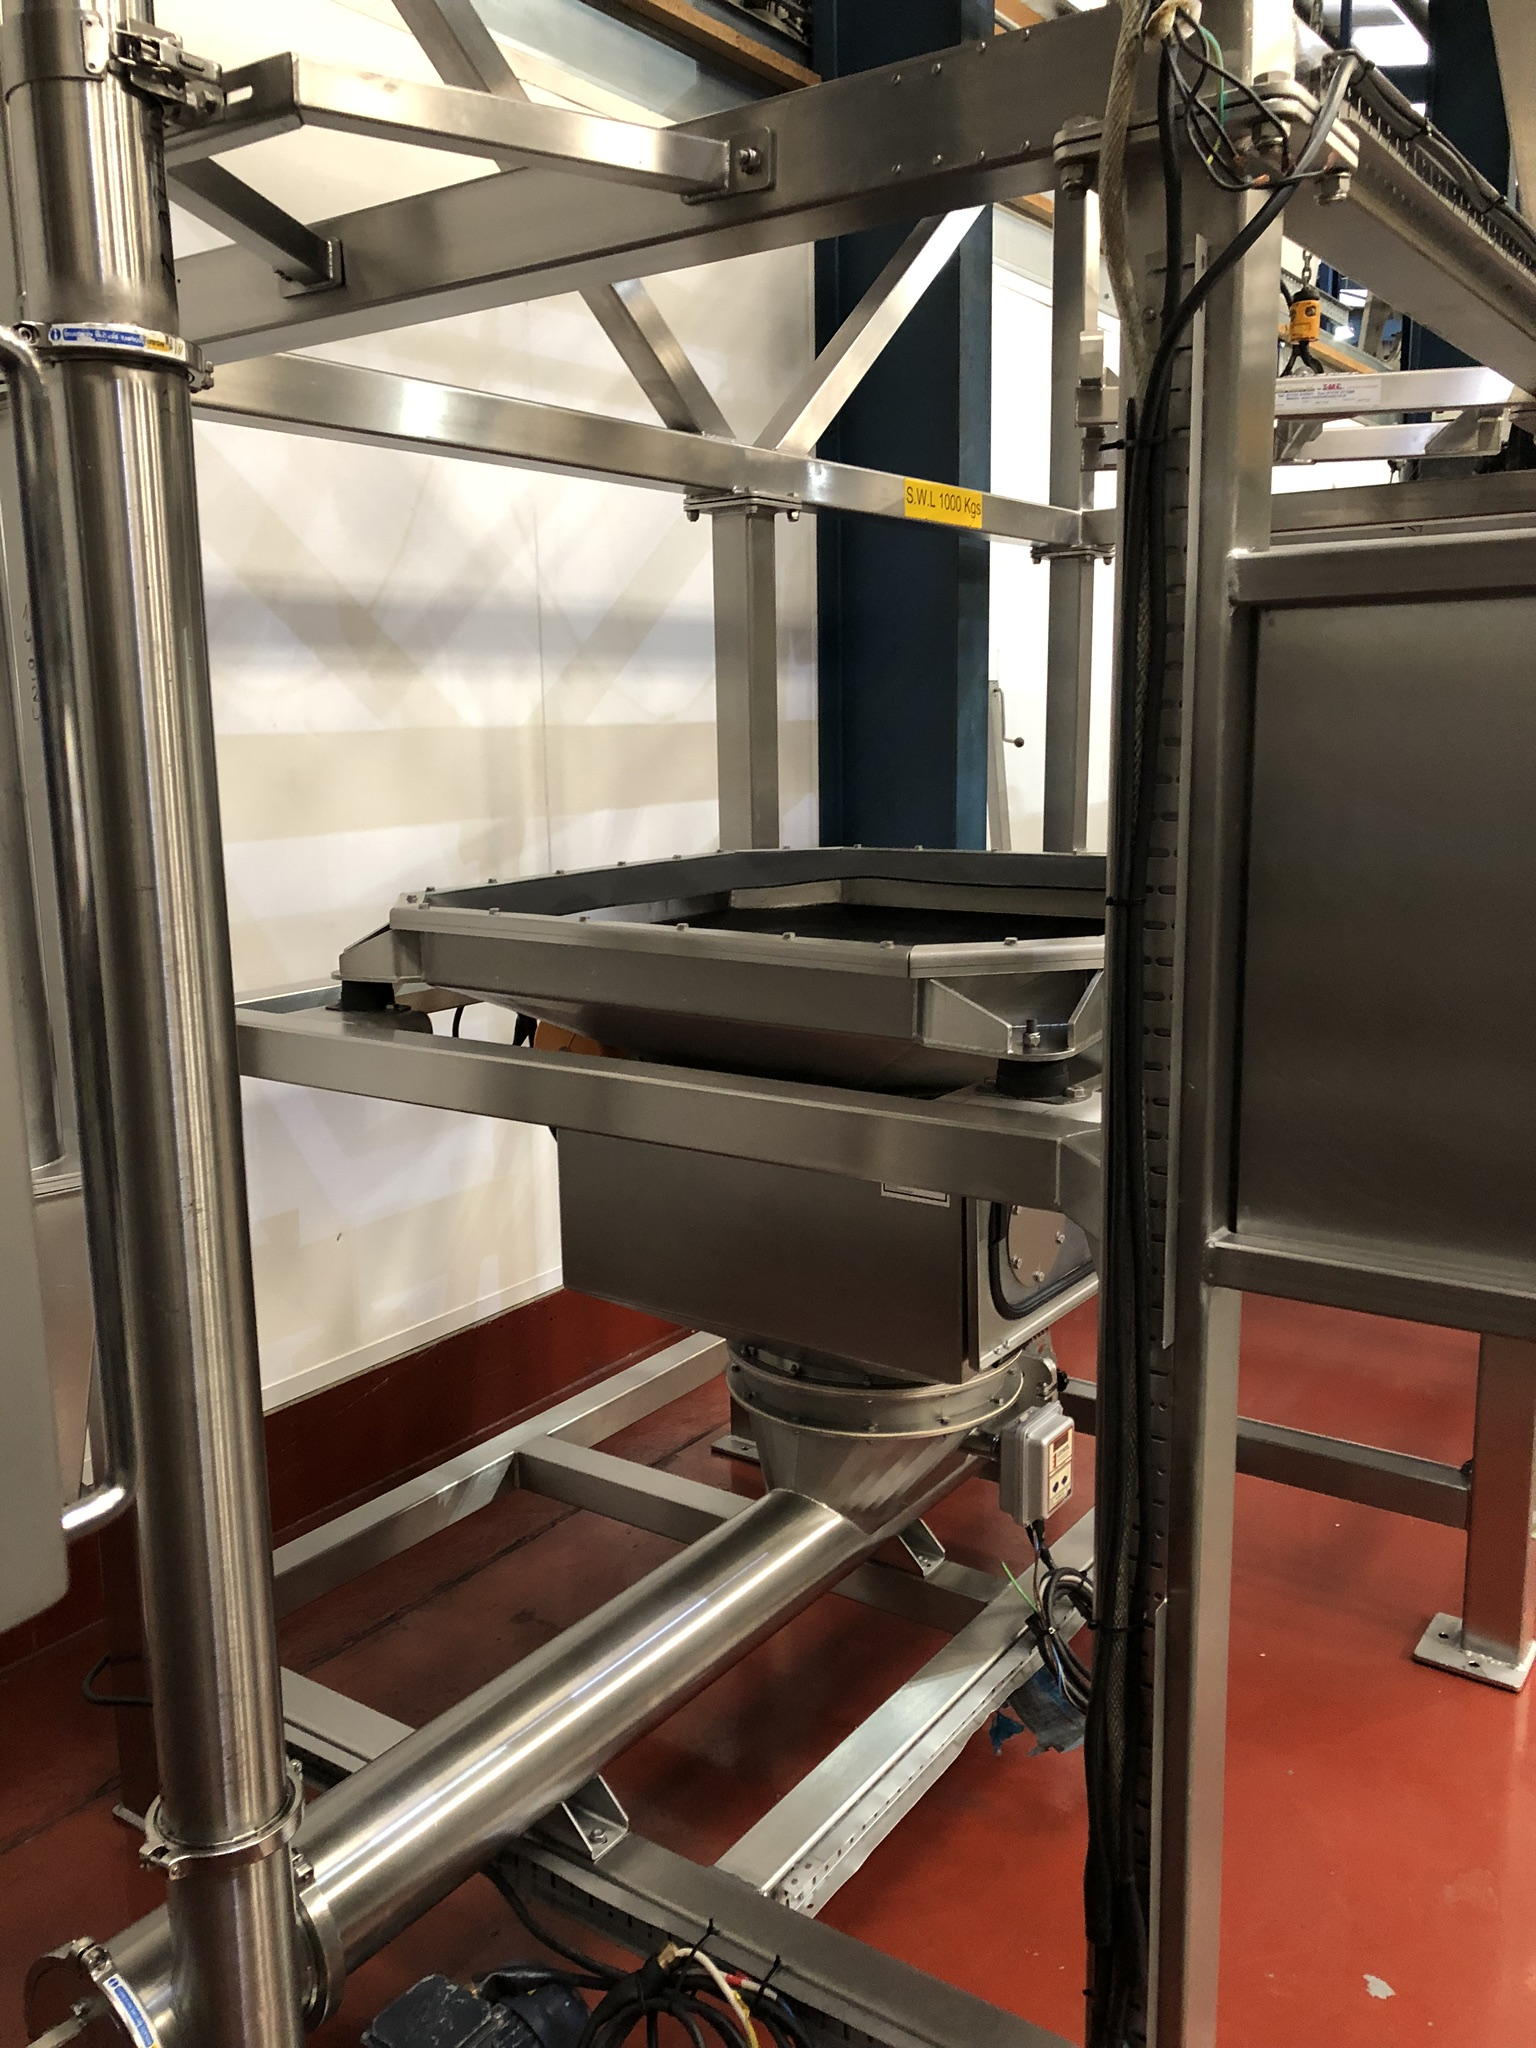 Guttridge 1000KG BULK BAG UNLOADING SYSTEM, with Star Liftket electric chain hoist, lift out - Image 6 of 8